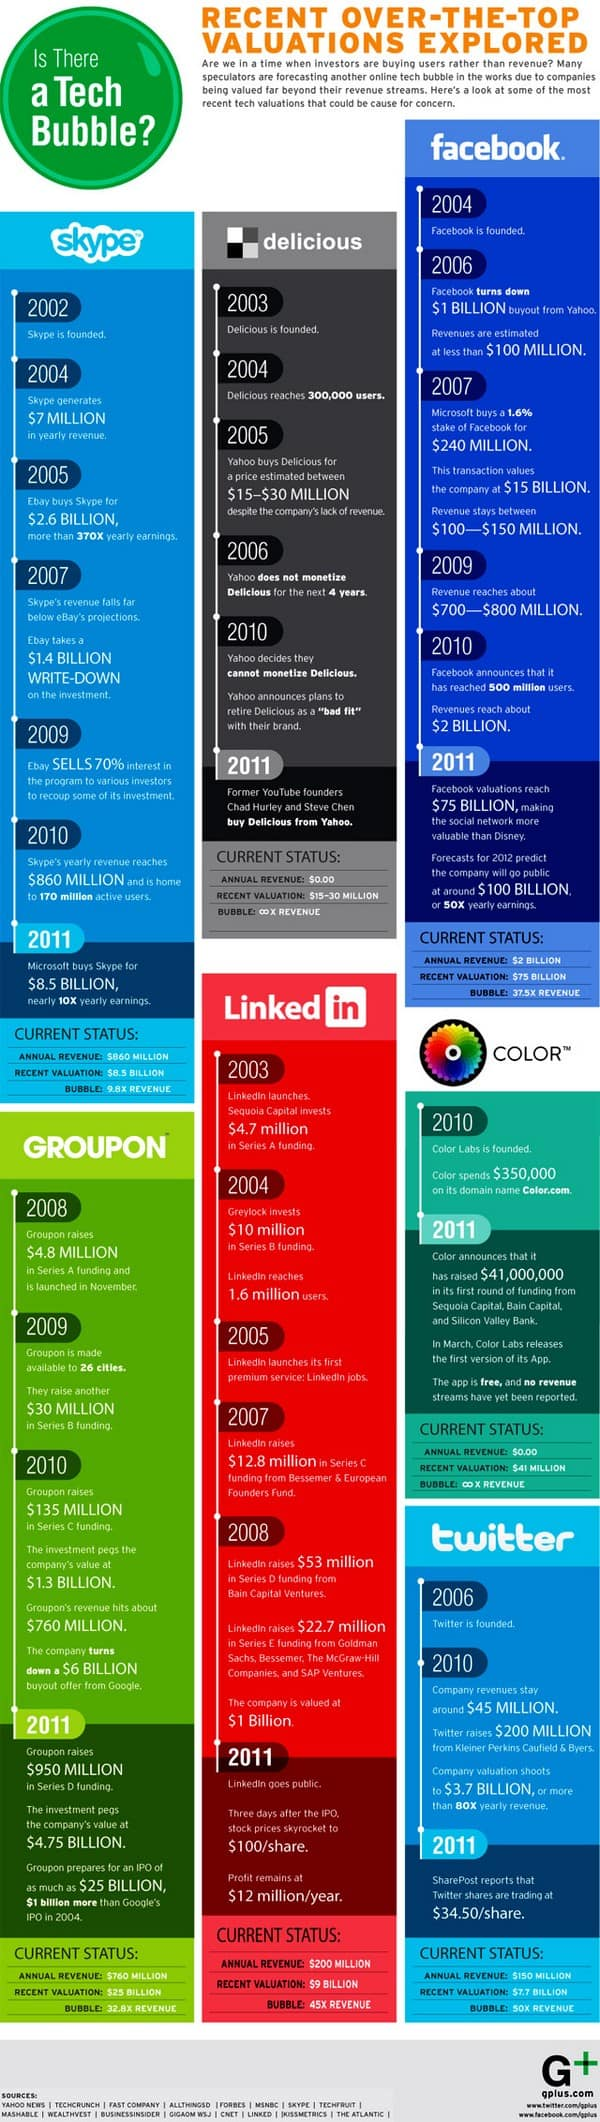 social media valuations infographic